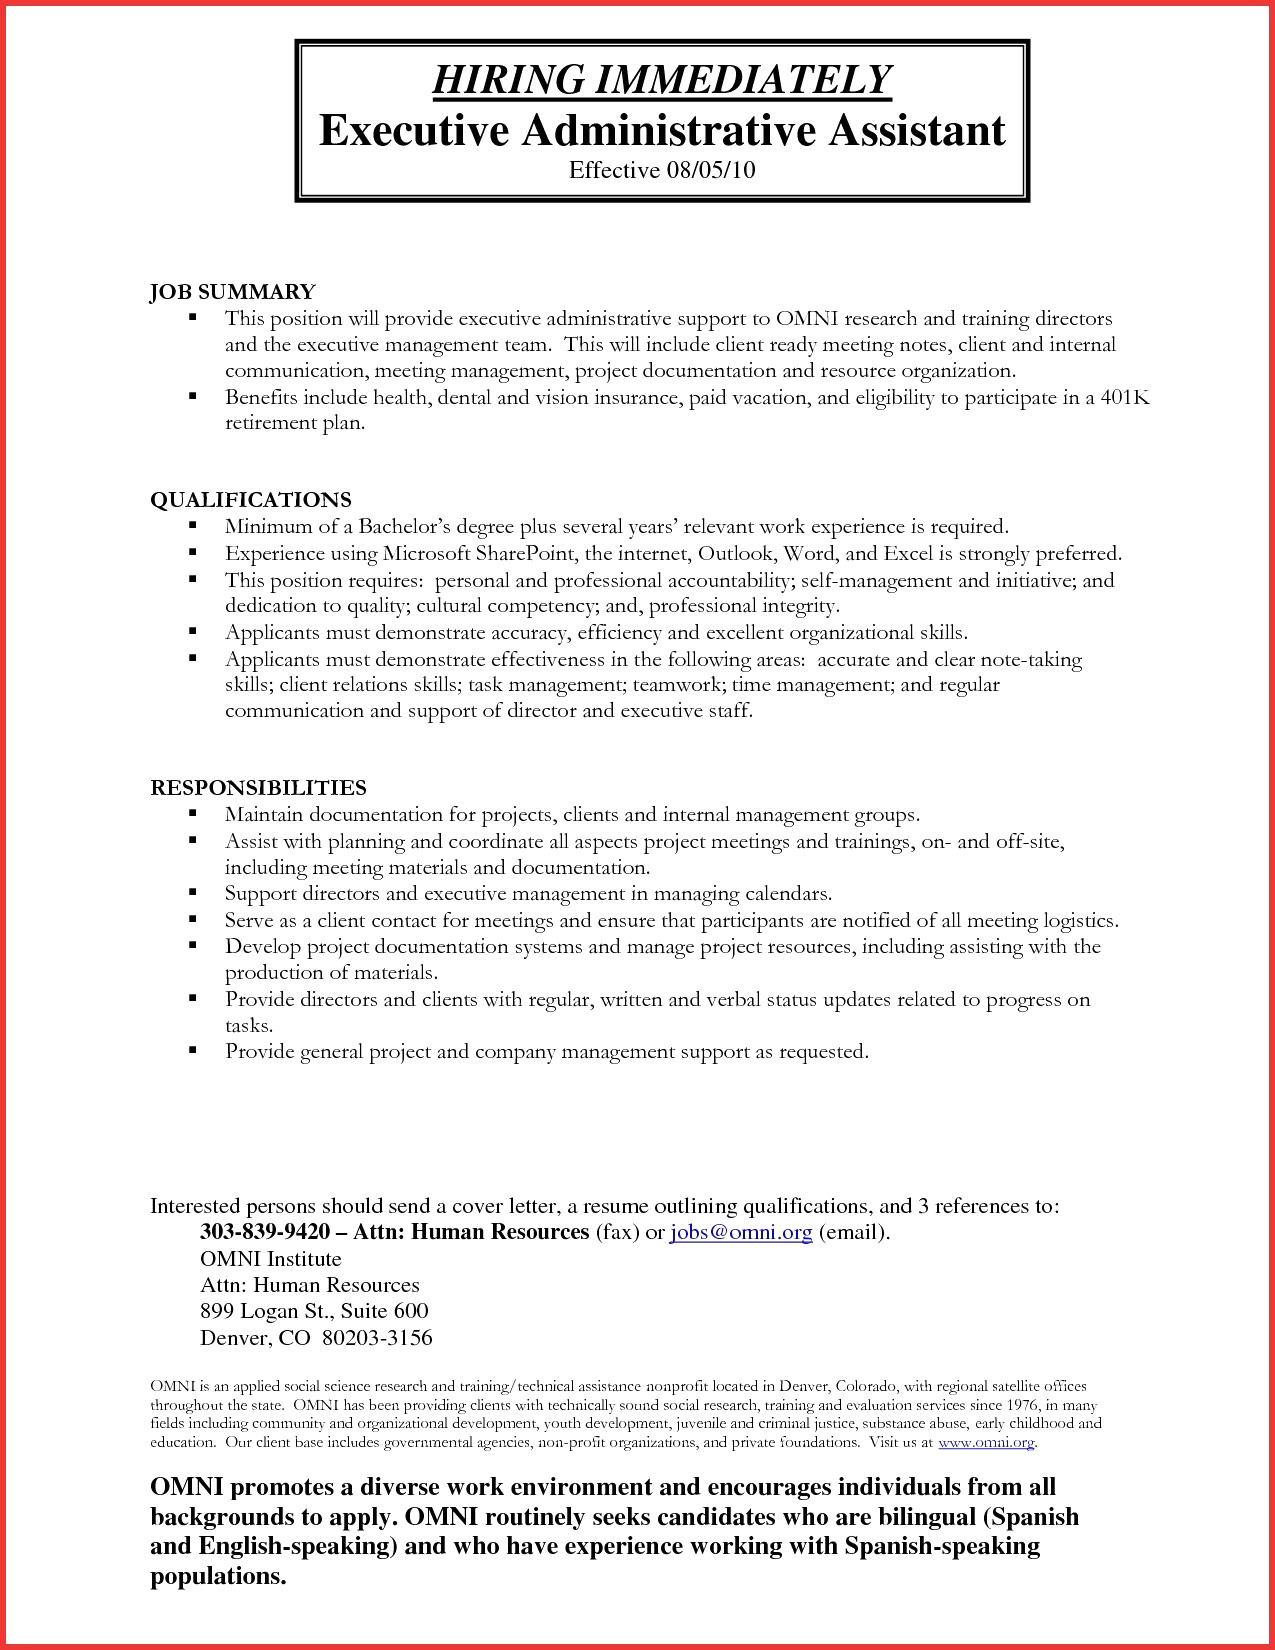 Human Resources Resume Summary - 41 Design Summary A Resume